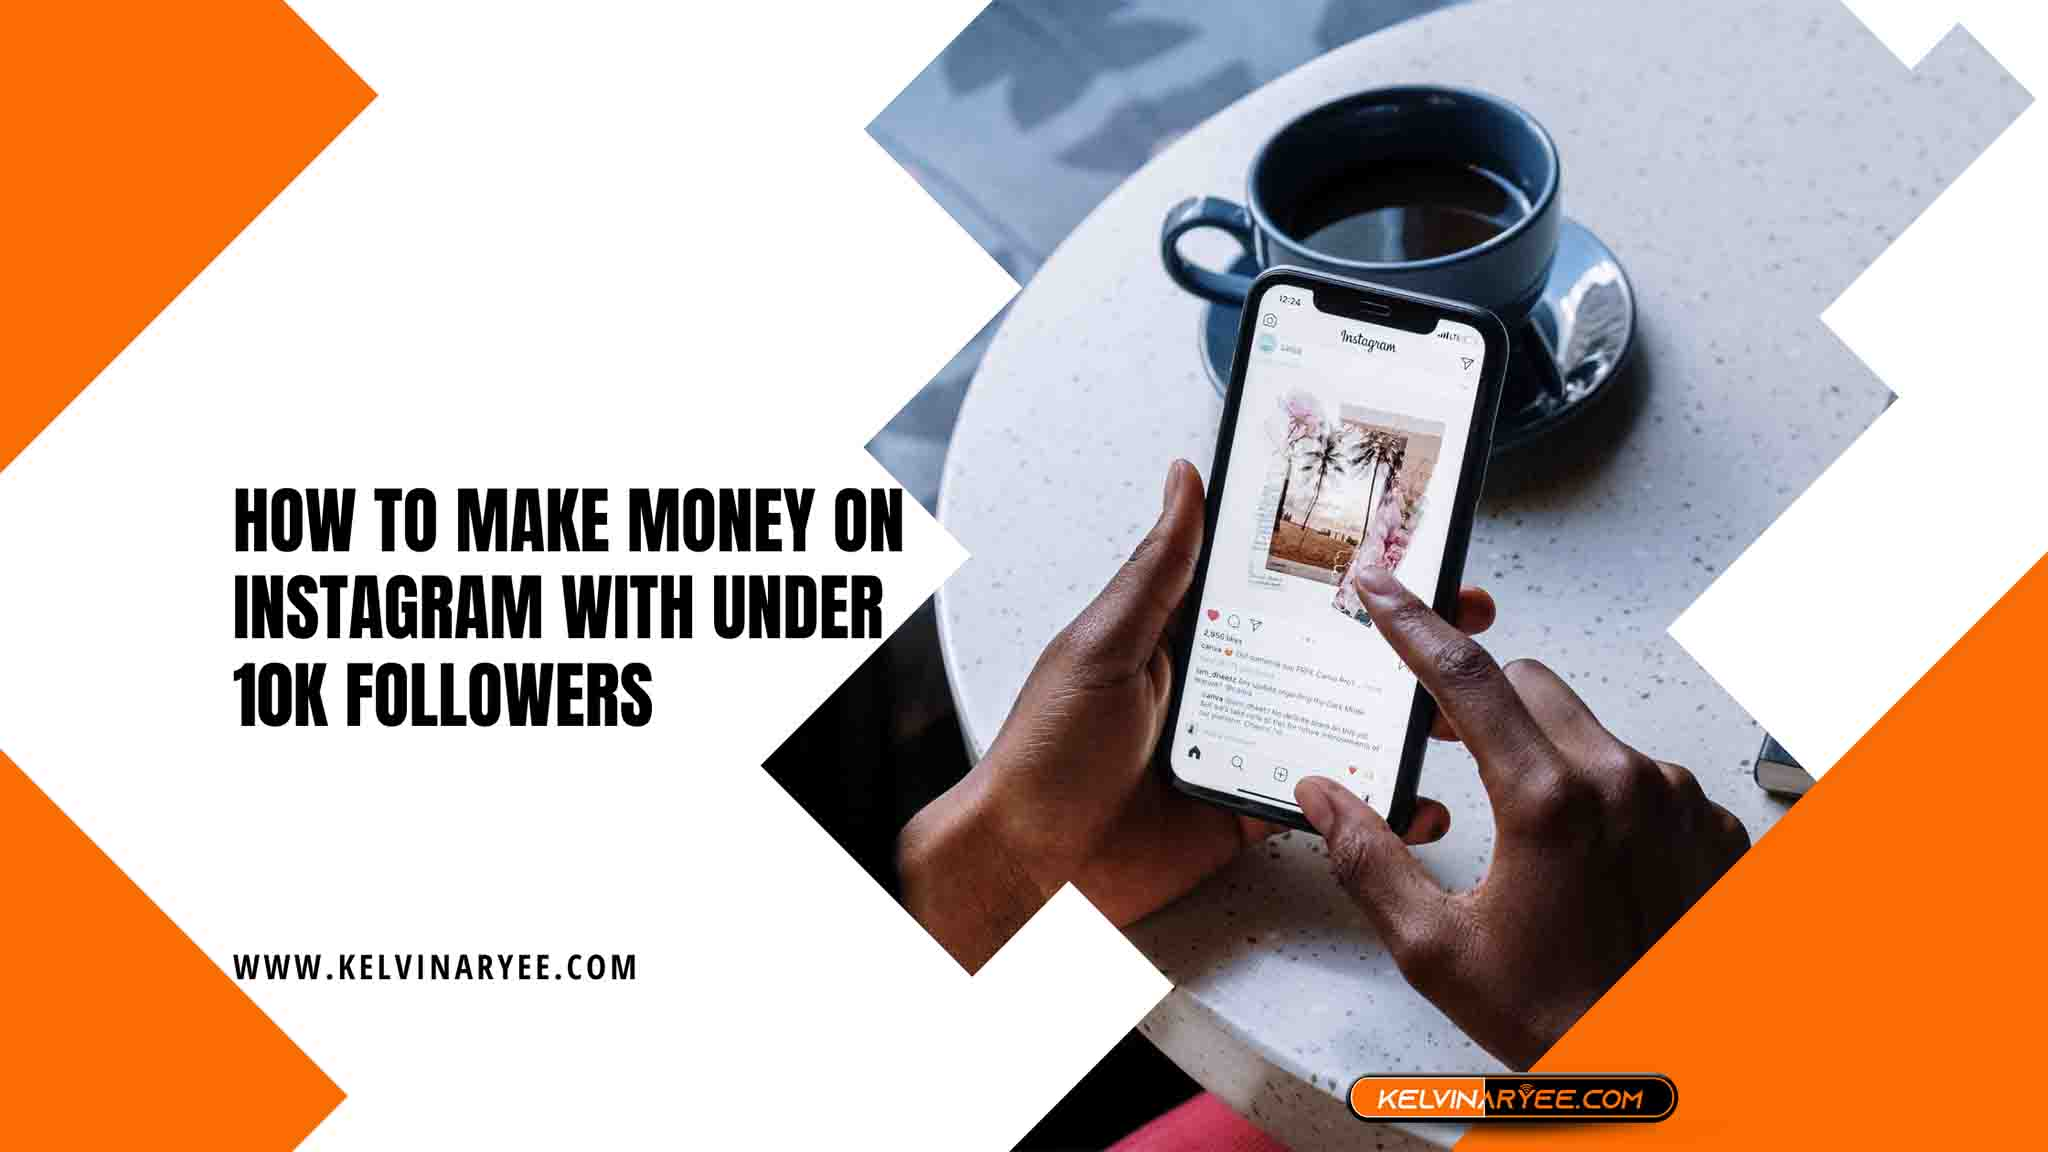 How to Make Money on Instagram With Under 10k Followers